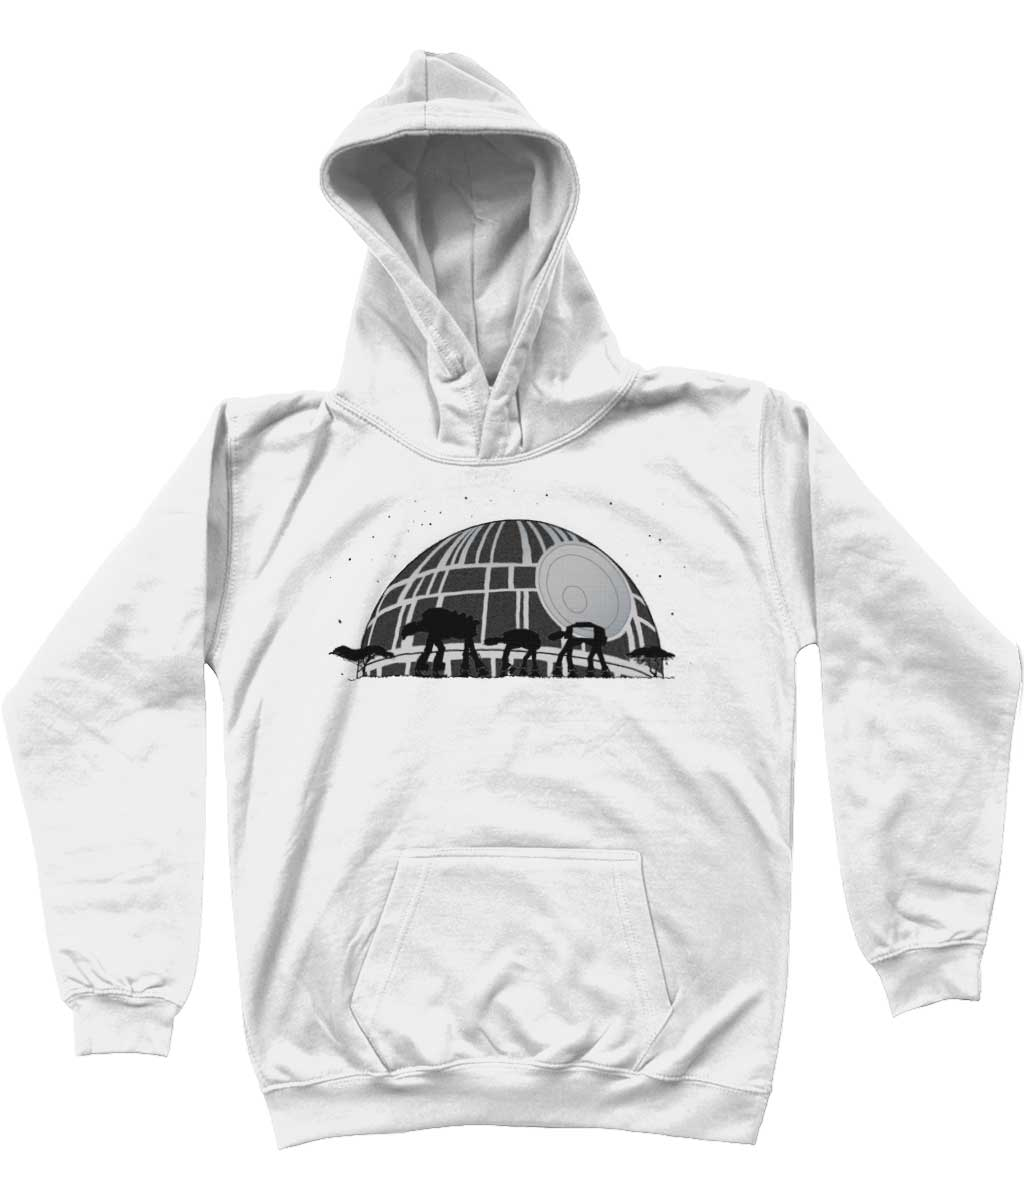 Star Wars Hoodies AT-AT